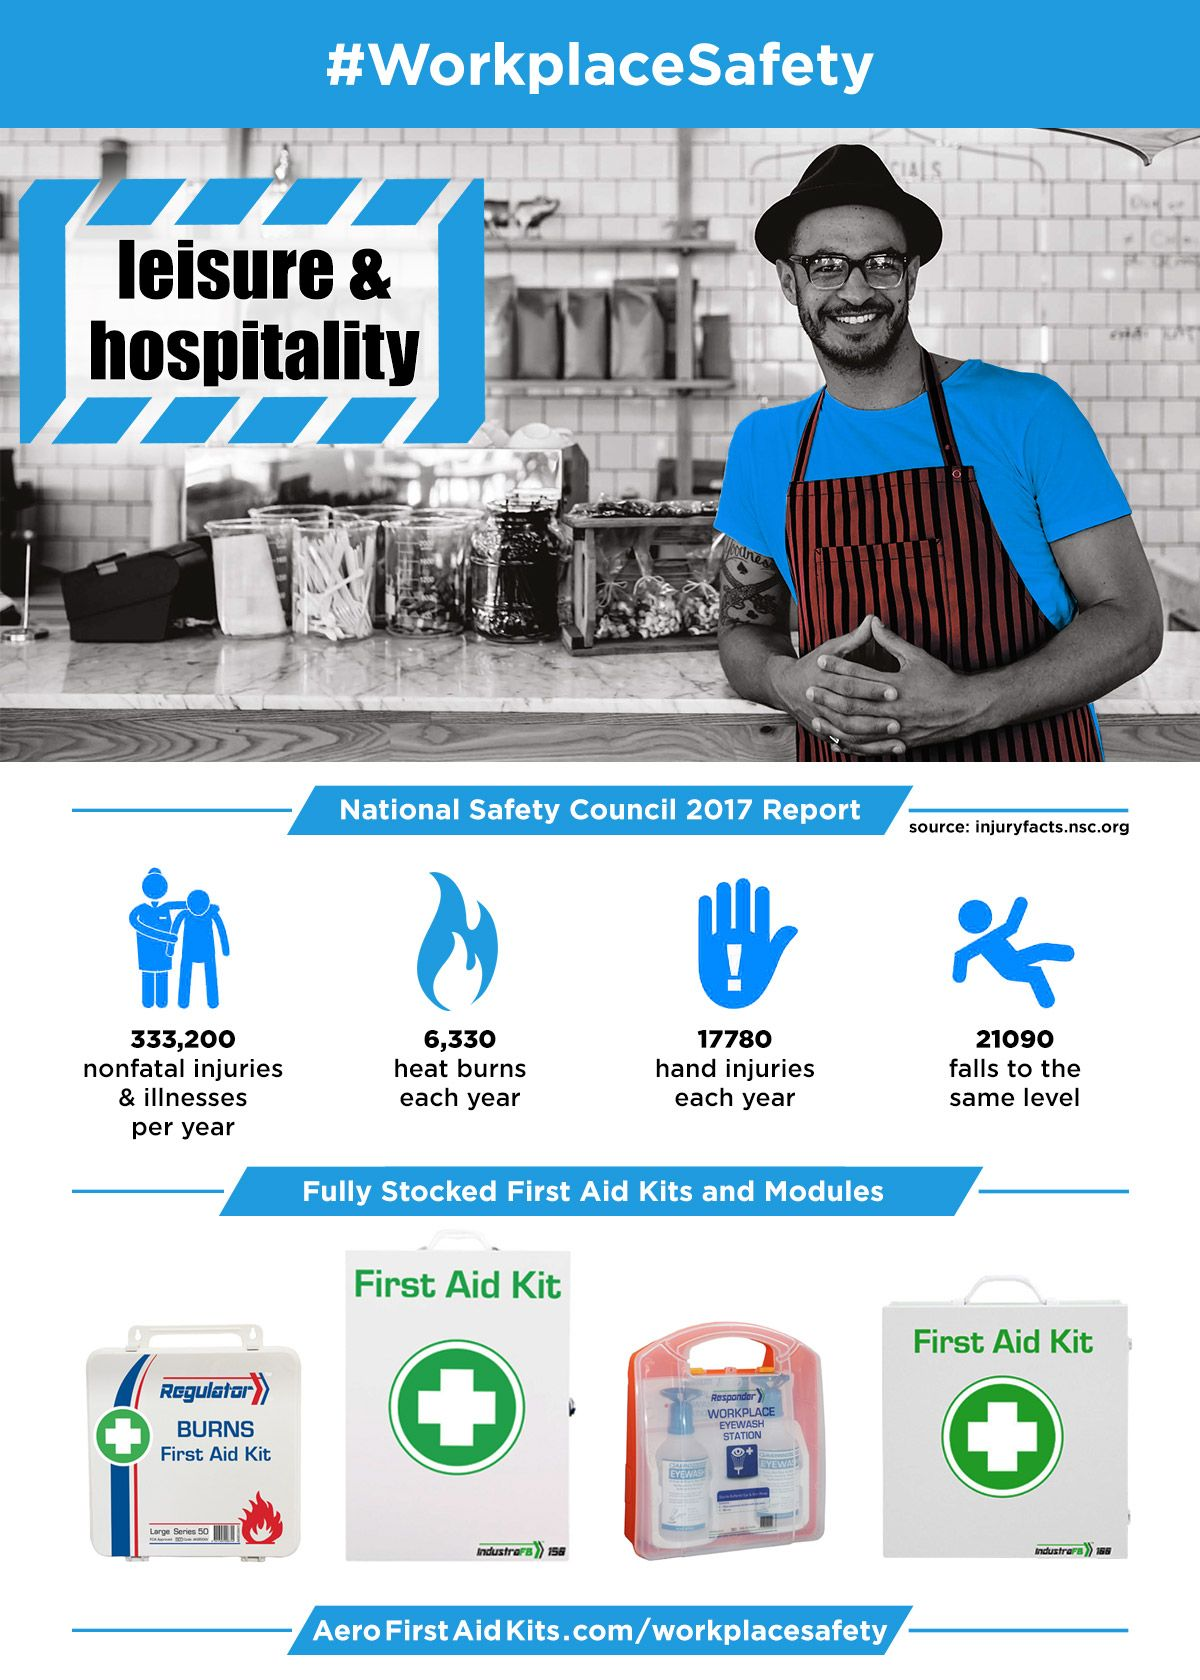 Workplace Safety - Leisure & Hospitality Industry First Aid